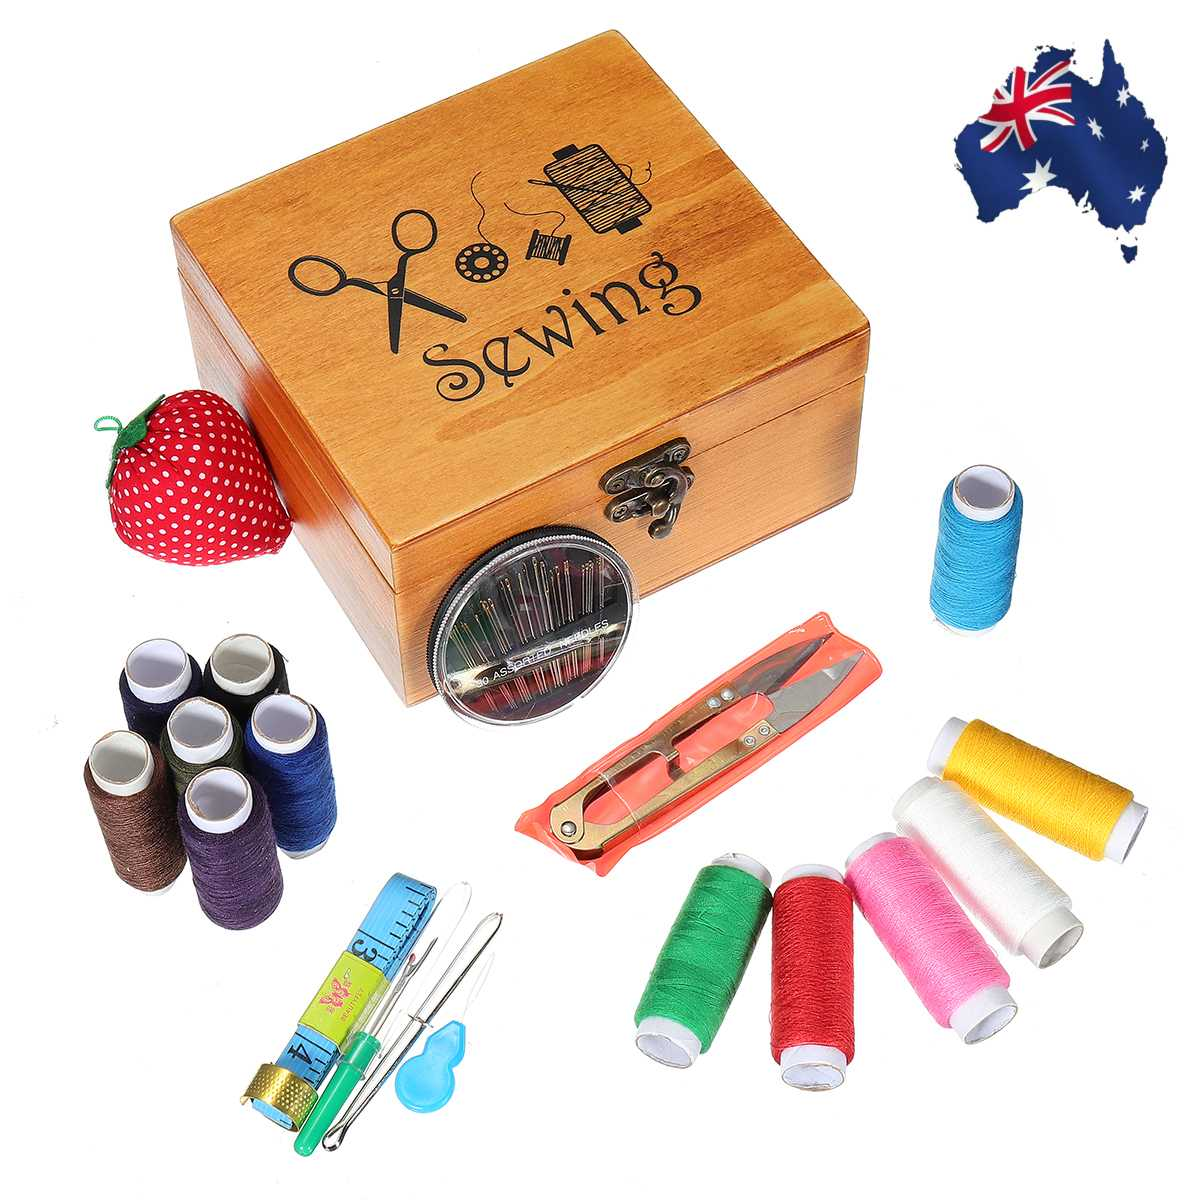 20Pcs/Set Portable Travel Sewing Box Kitting Needles Tools Quilting Thread Stitching Embroidery Craft Sewing Kits Home Organizer